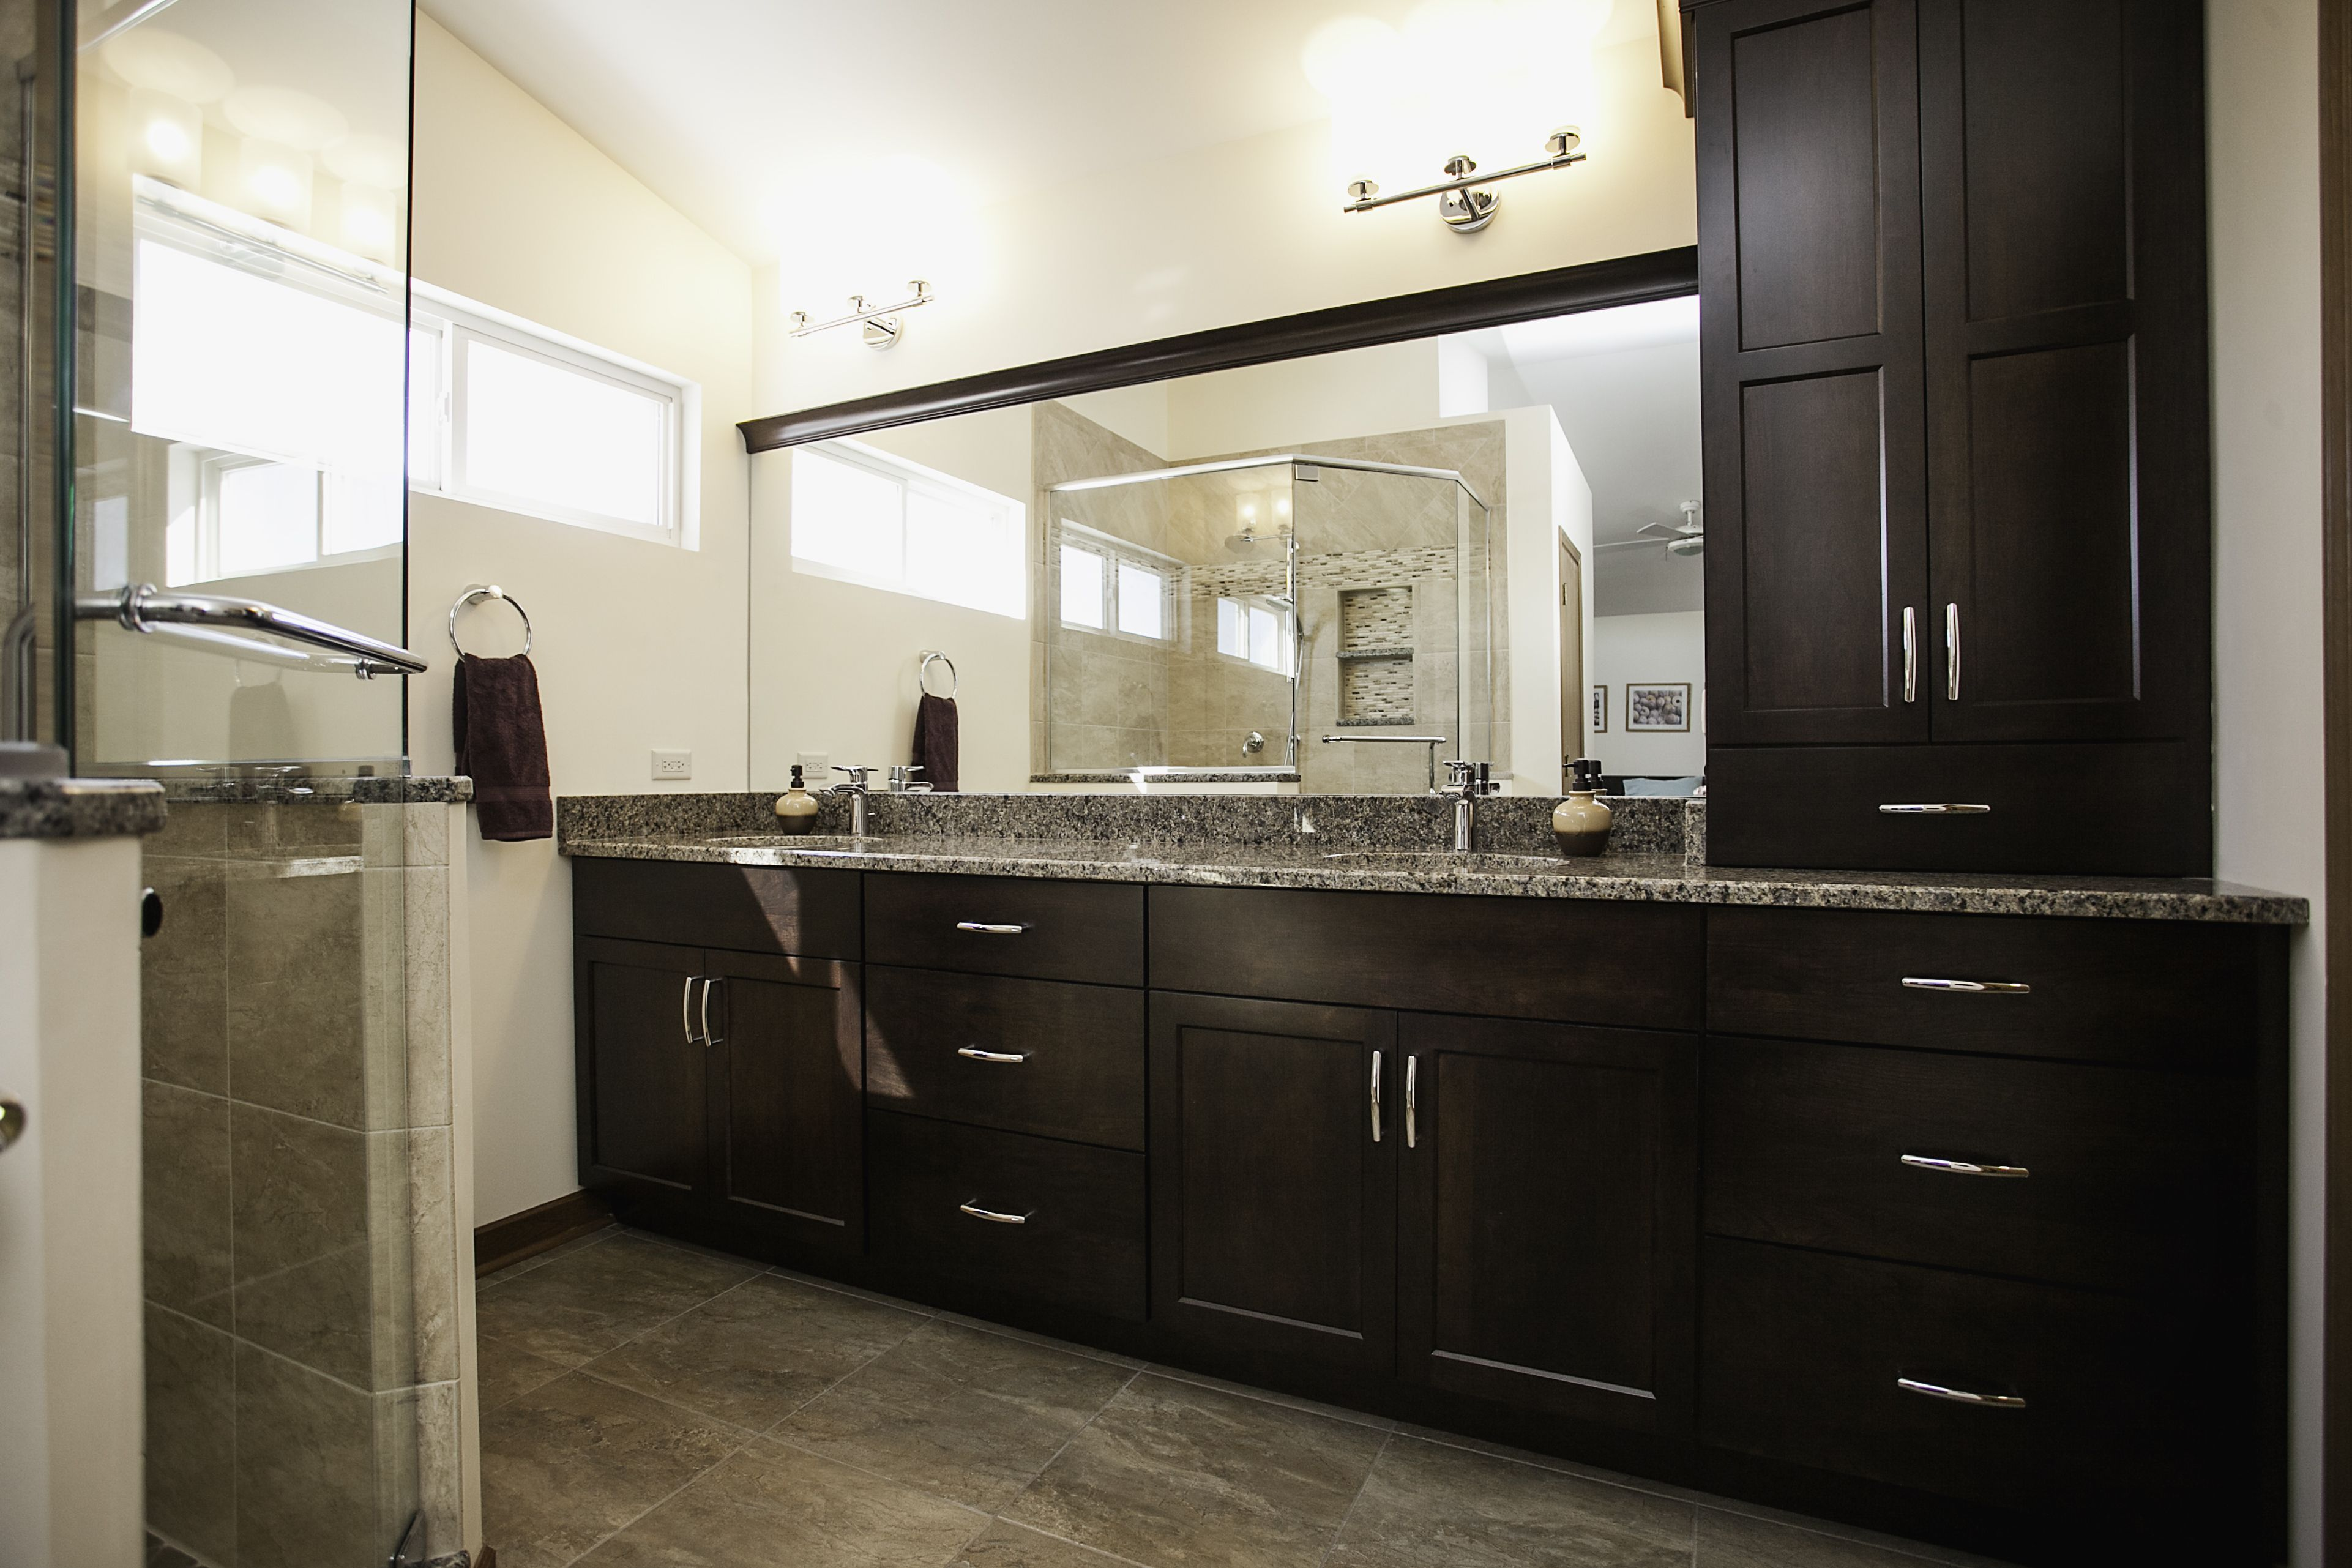 Bolingbrook Transitional Master Bath Extra Storage In Double Vanity And Towe